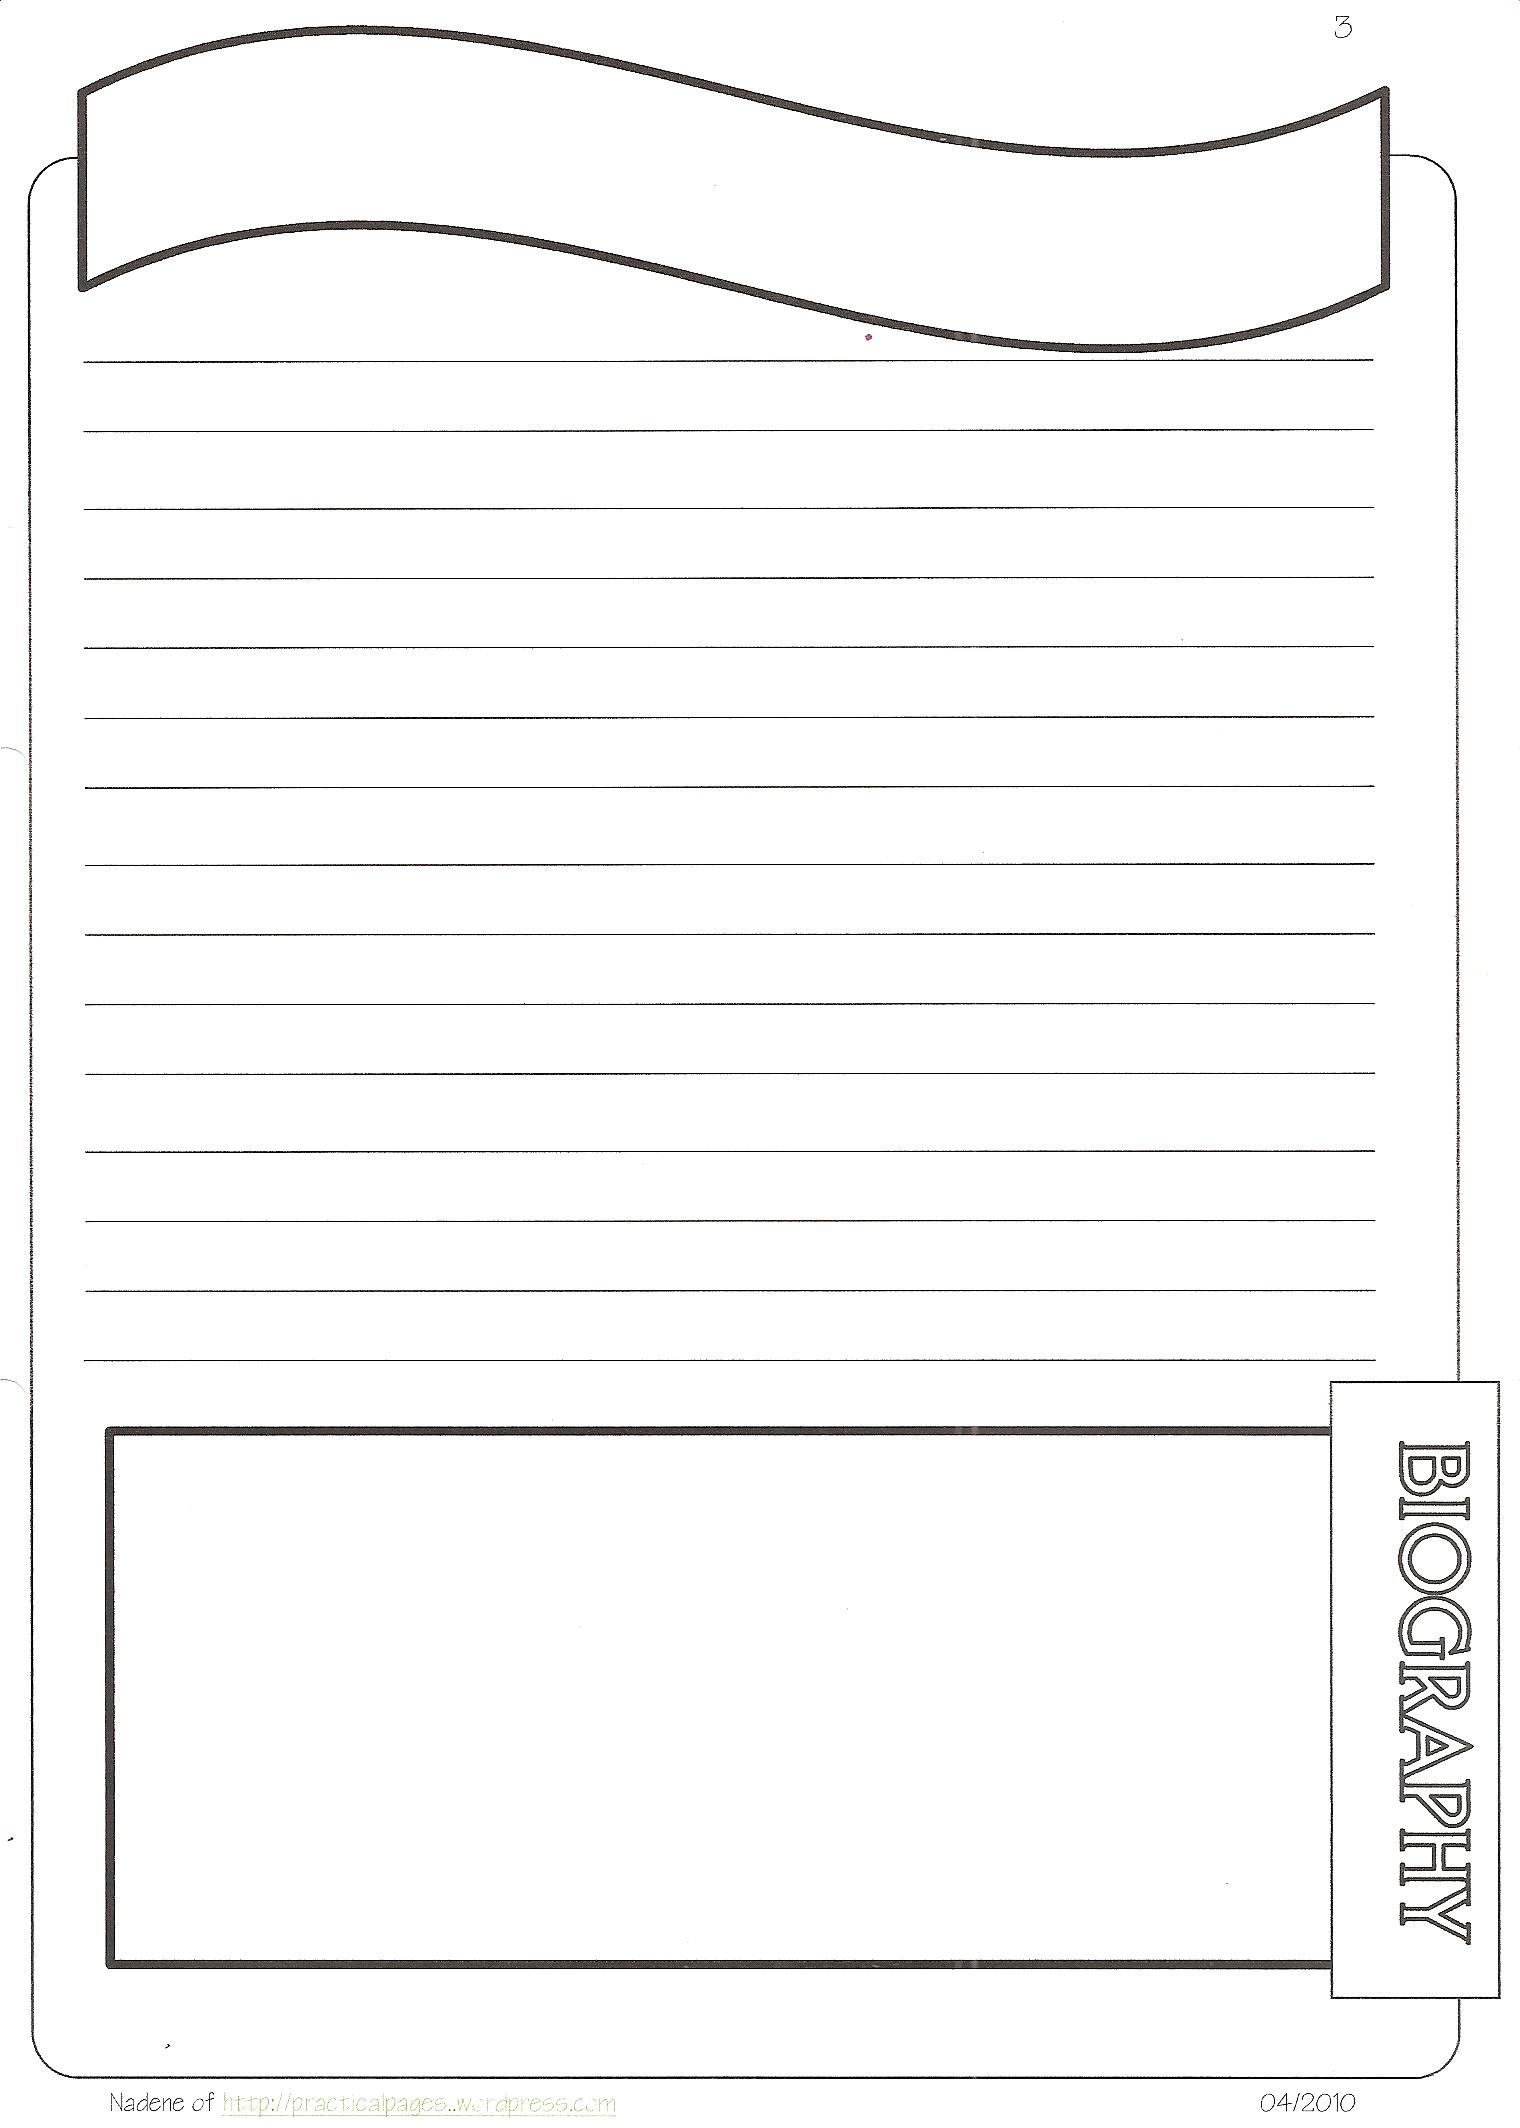 New Biography Notebook Page Templates Tsqd6JX4